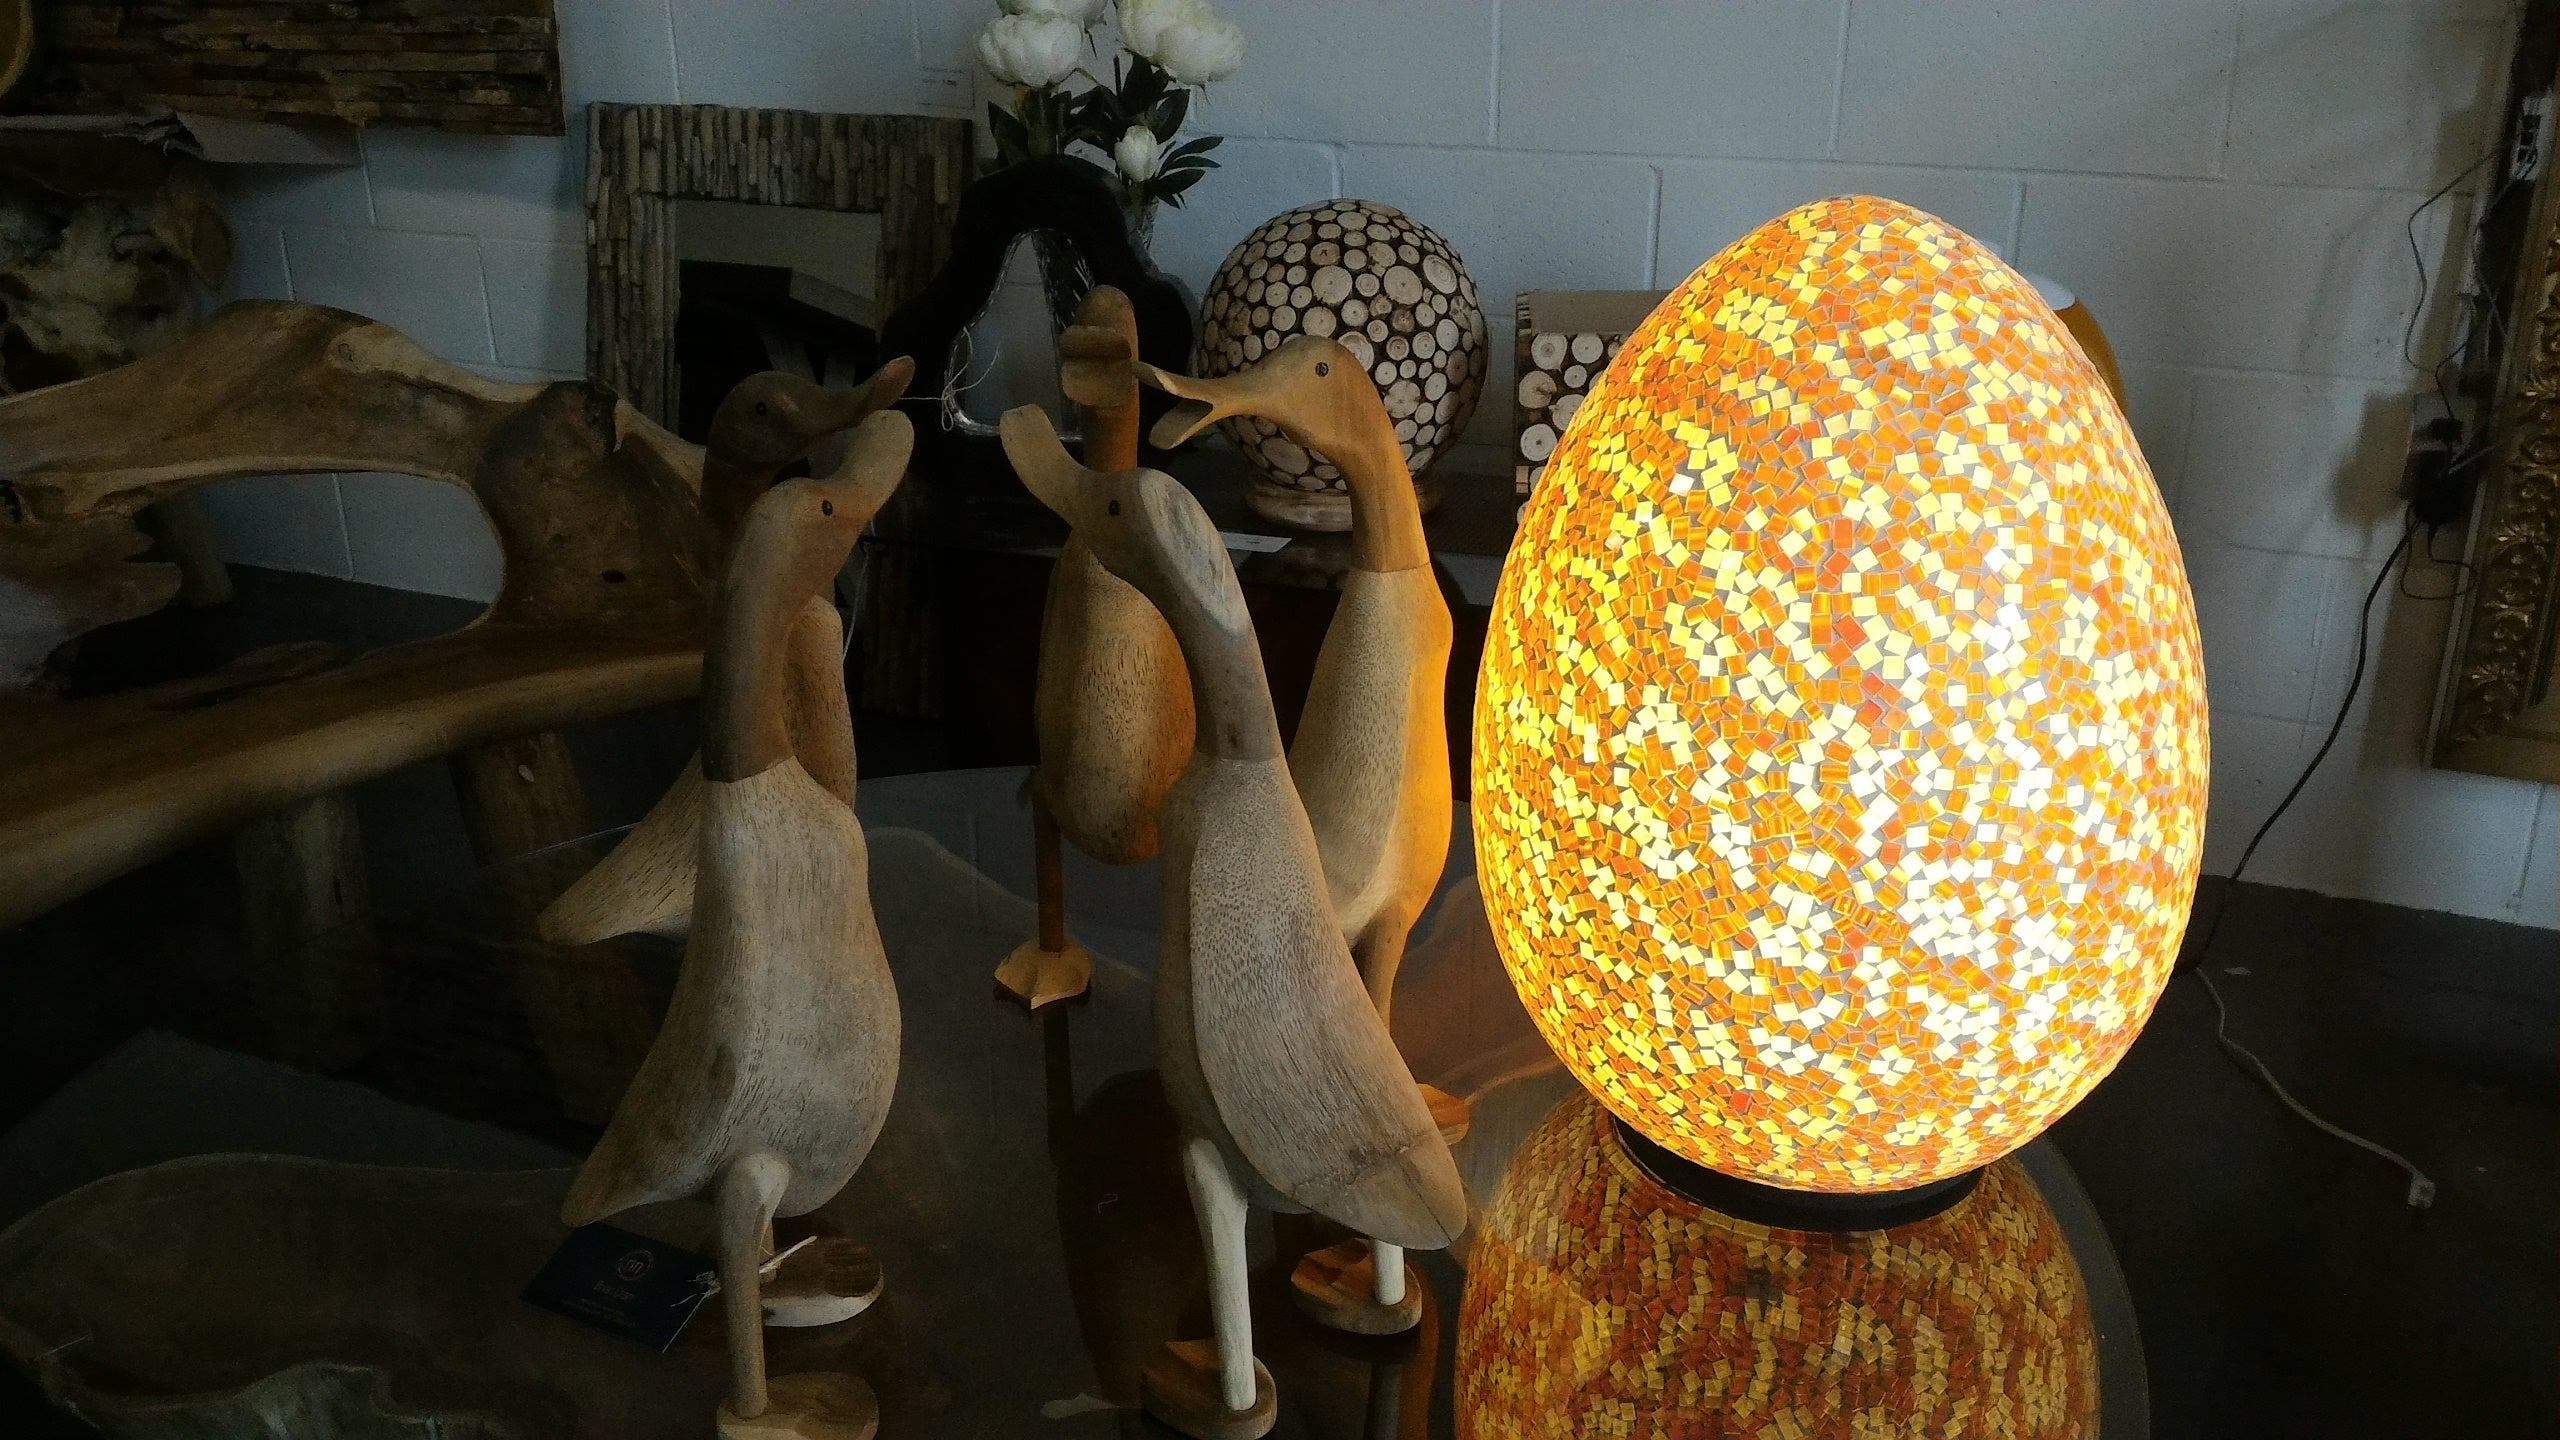 Handcrafted Mosaic Egg Table Lamp (Orange & White) & Accent Lighting